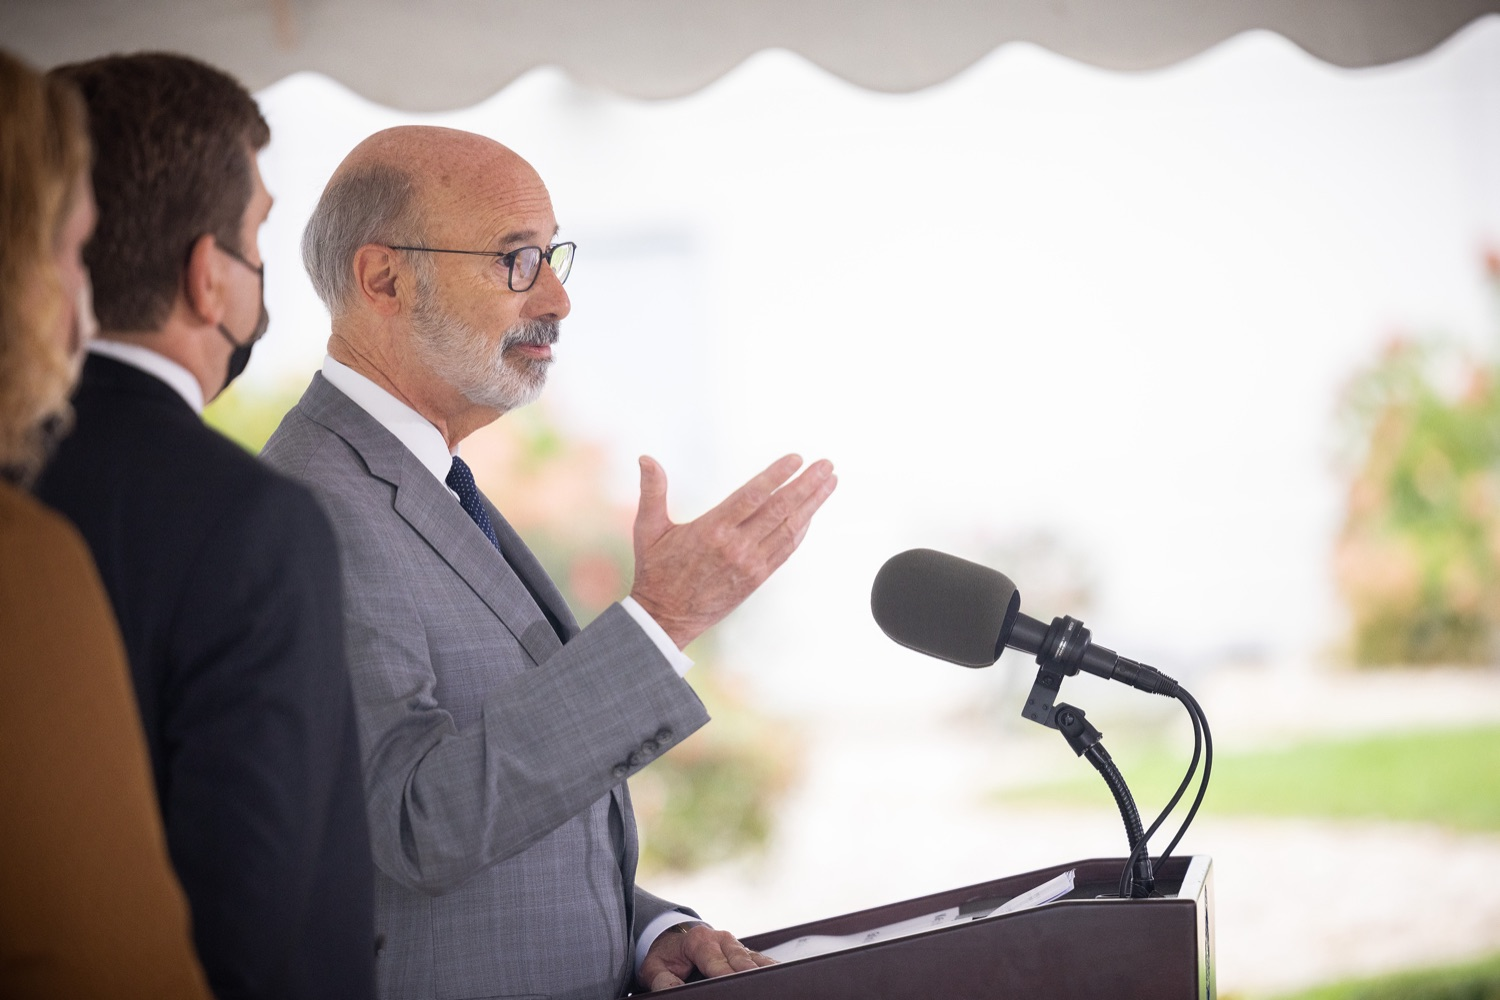 """<a href=""""https://filesource.wostreaming.net/commonwealthofpa/photo/20138_gov_BioTechniqueRibbon_dz_015.JPG"""" target=""""_blank"""">⇣Download Photo<br></a>Pennsylvania Governor Tom Wolf speaking with the press.  Governor Tom Wolf today joined BioTechnique CEO John Clapham, the Department of Community and Economic Developments (DCED) Governors Action Team (GAT), York County Economic Alliance CEO Kevin Schreiber, and local officials at the ribbon cutting ceremony for BioTechniques new pharmaceutical manufacturing facility in York County.   OCTOBER 12, 2021 - YORK, PA"""